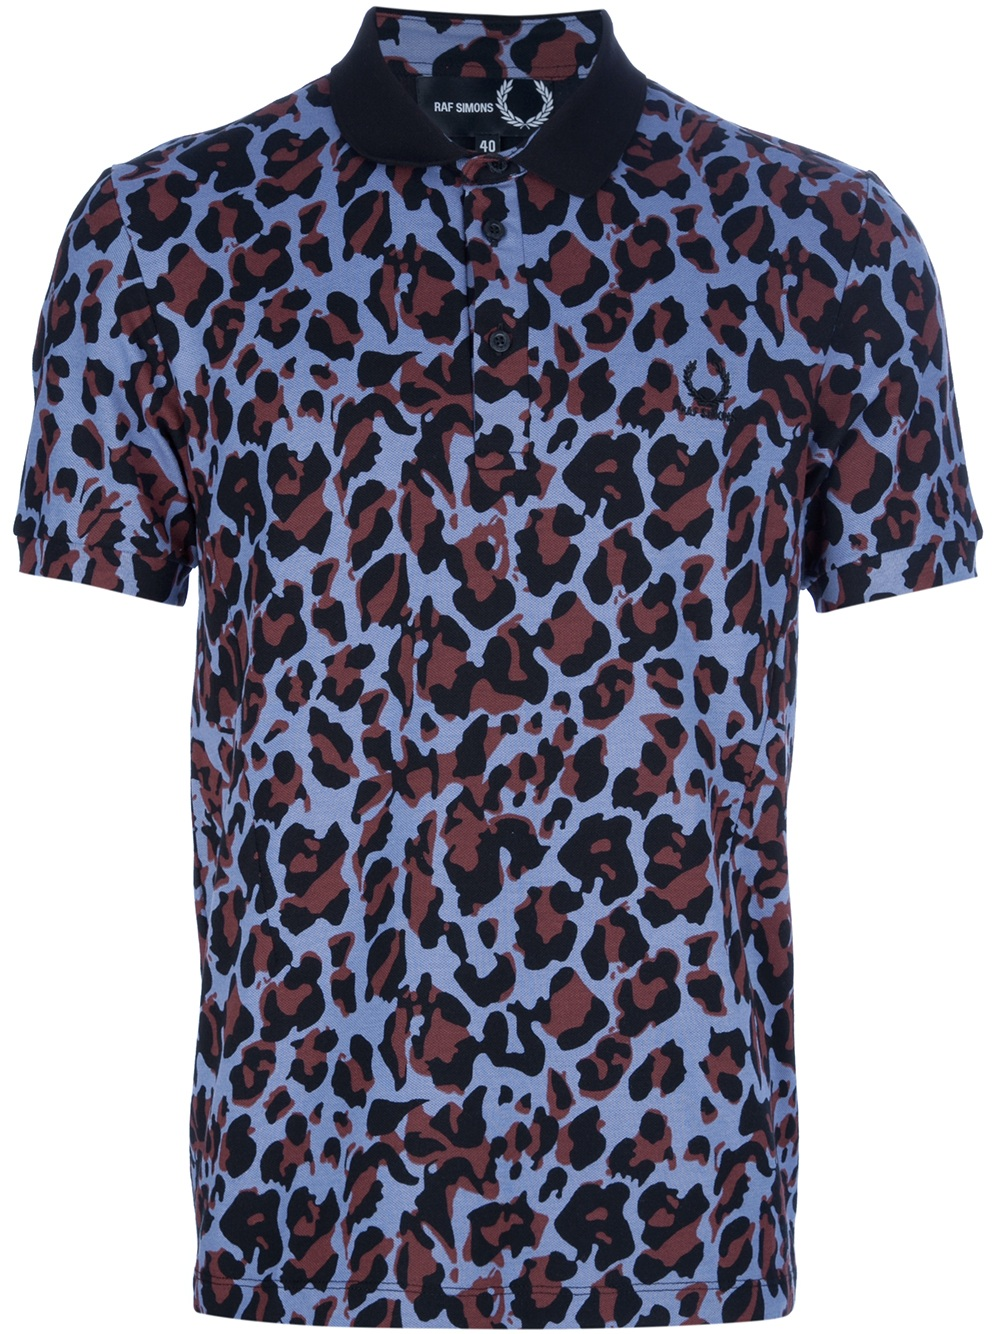 Lyst - Raf Simons Leopard Print Polo Shirt in Blue for Men